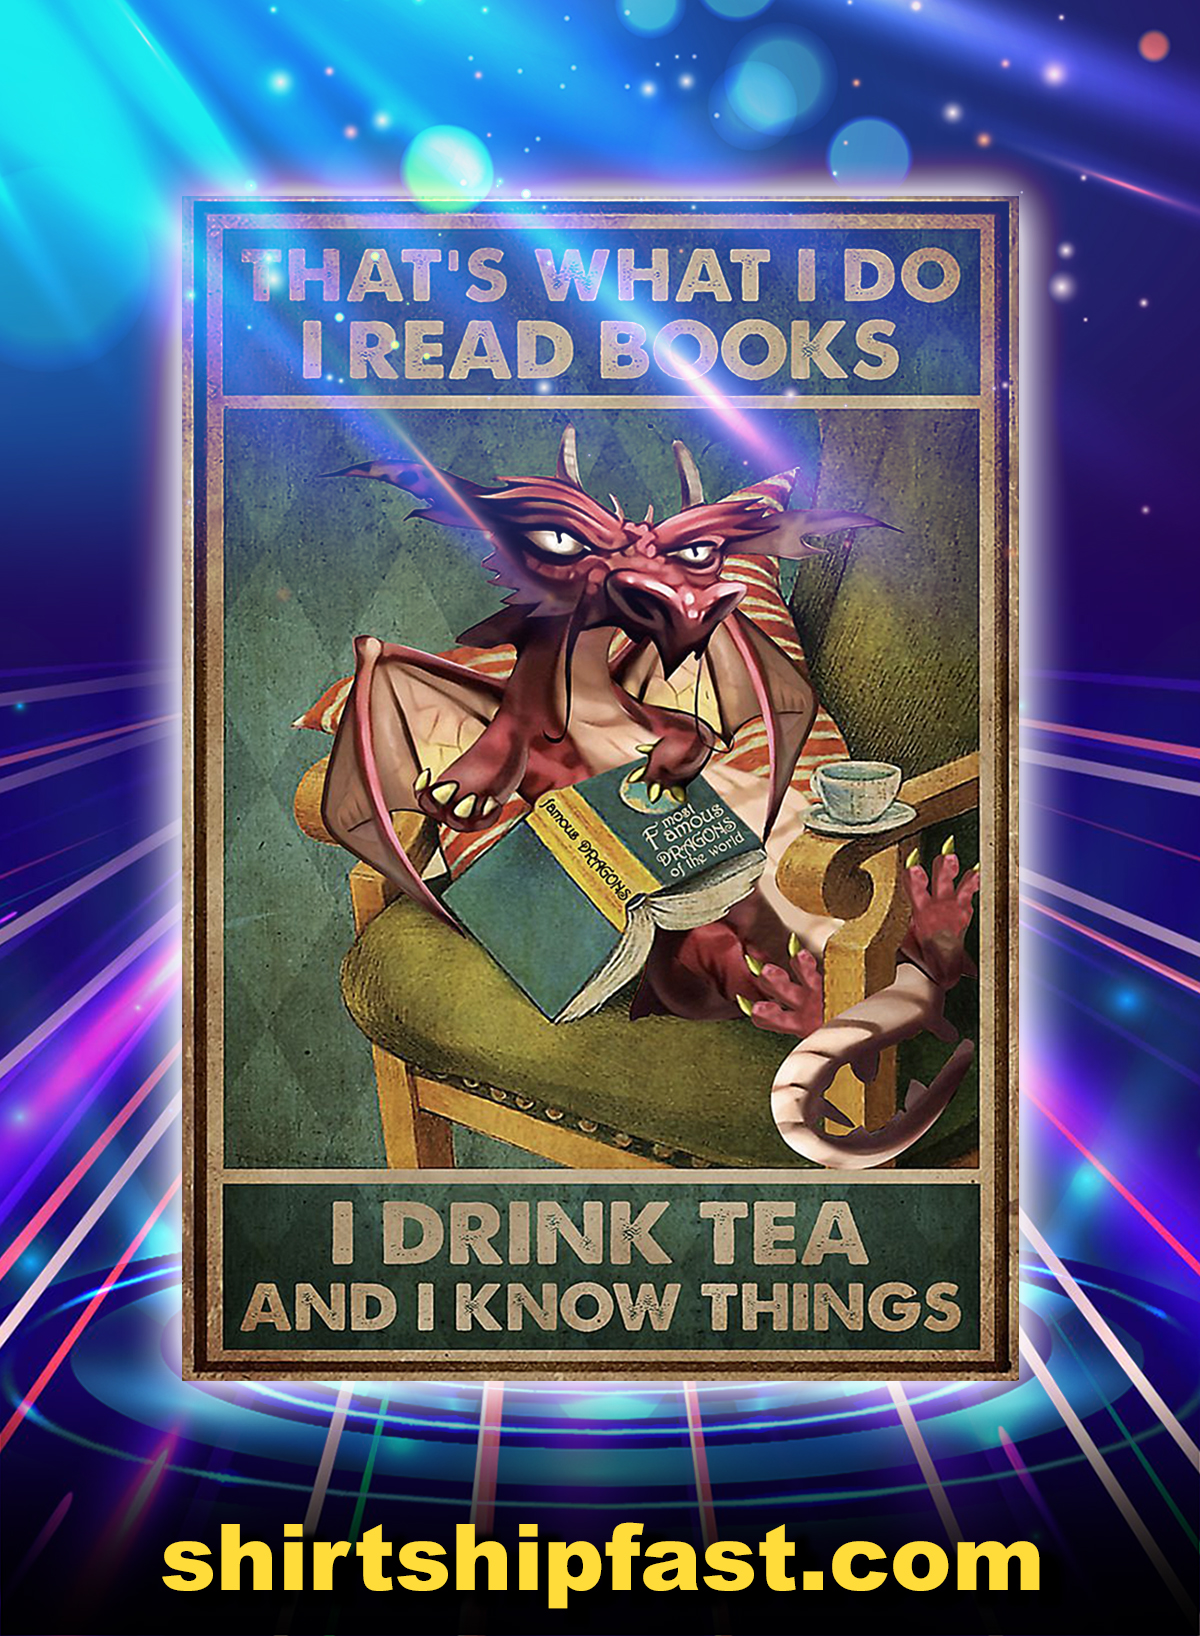 Dragon That's what I do I read books I drink tea and I know things poster - Picture 3